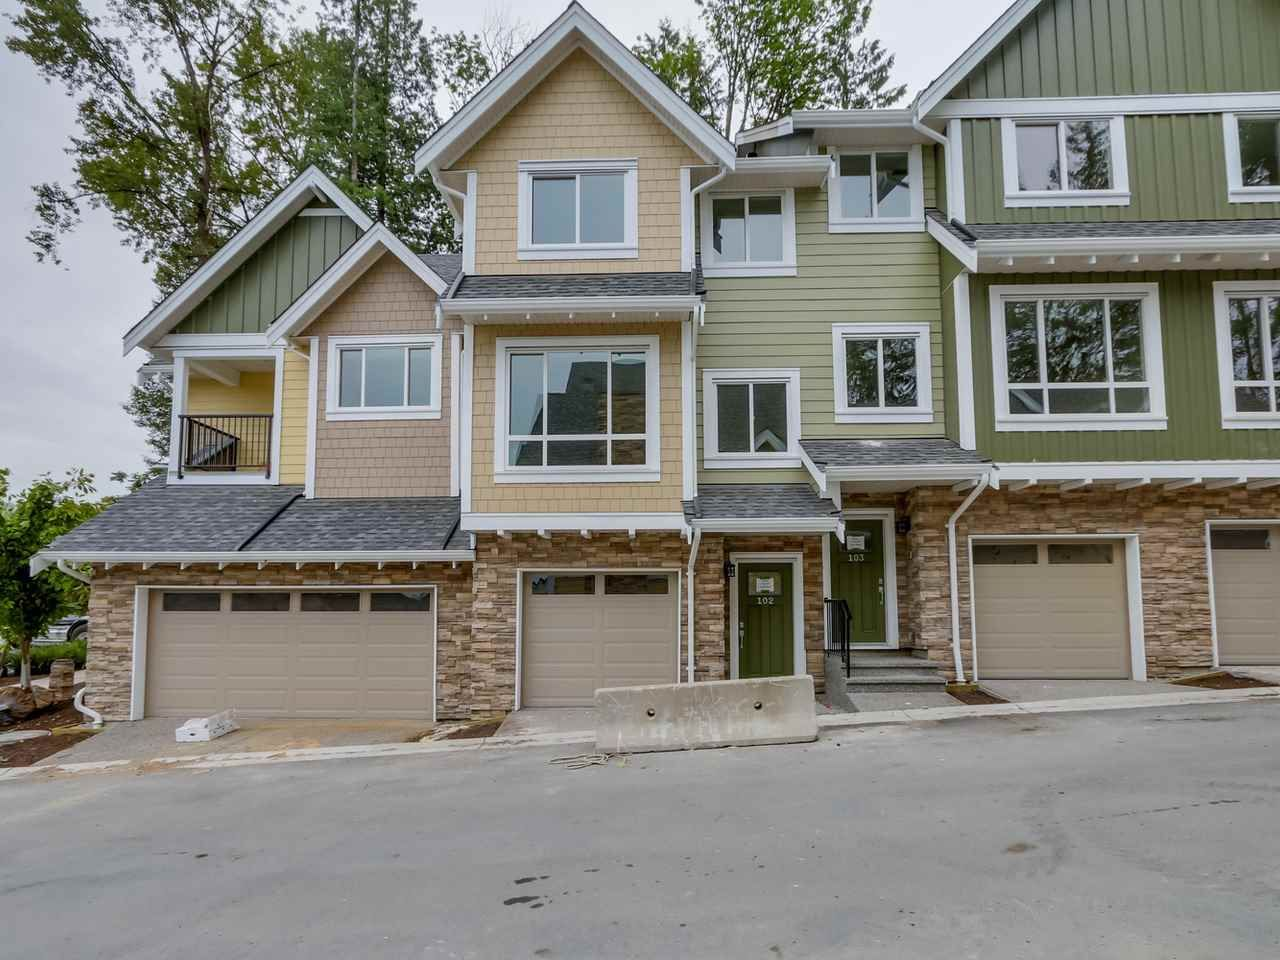 """Main Photo: 103 1405 DAYTON Street in Coquitlam: Burke Mountain Townhouse for sale in """"ERICA"""" : MLS®# R2123284"""